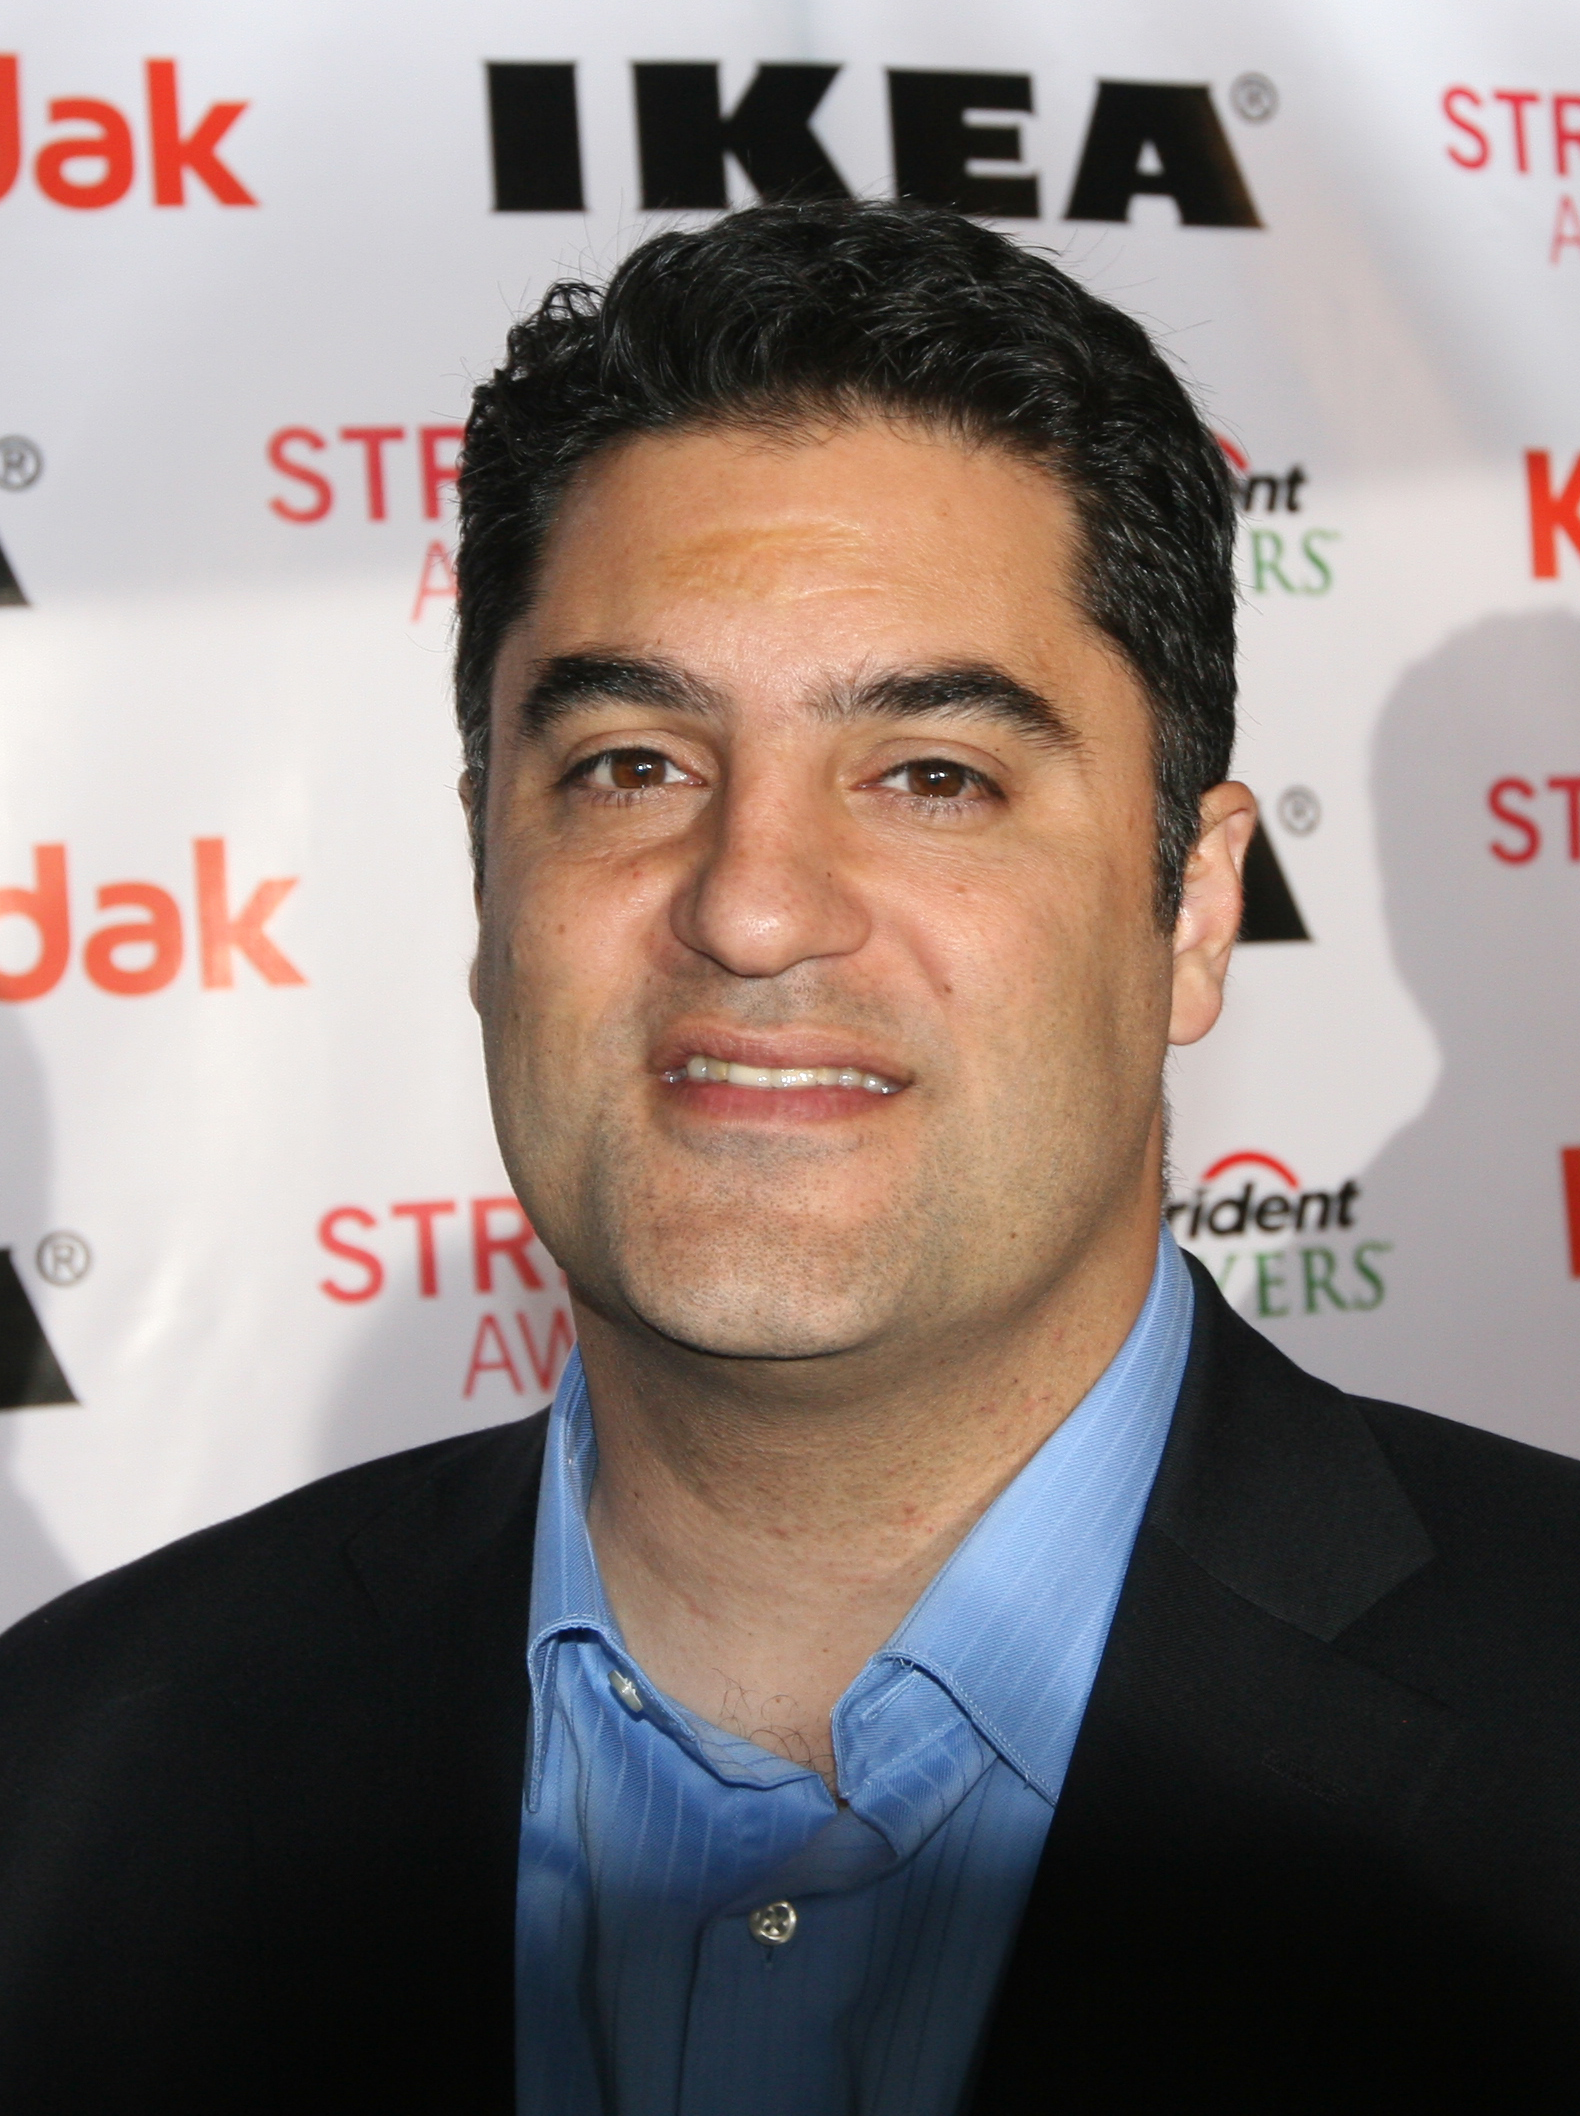 Cenk Uygur Streamys Wikipedia The Free Encyclopedia